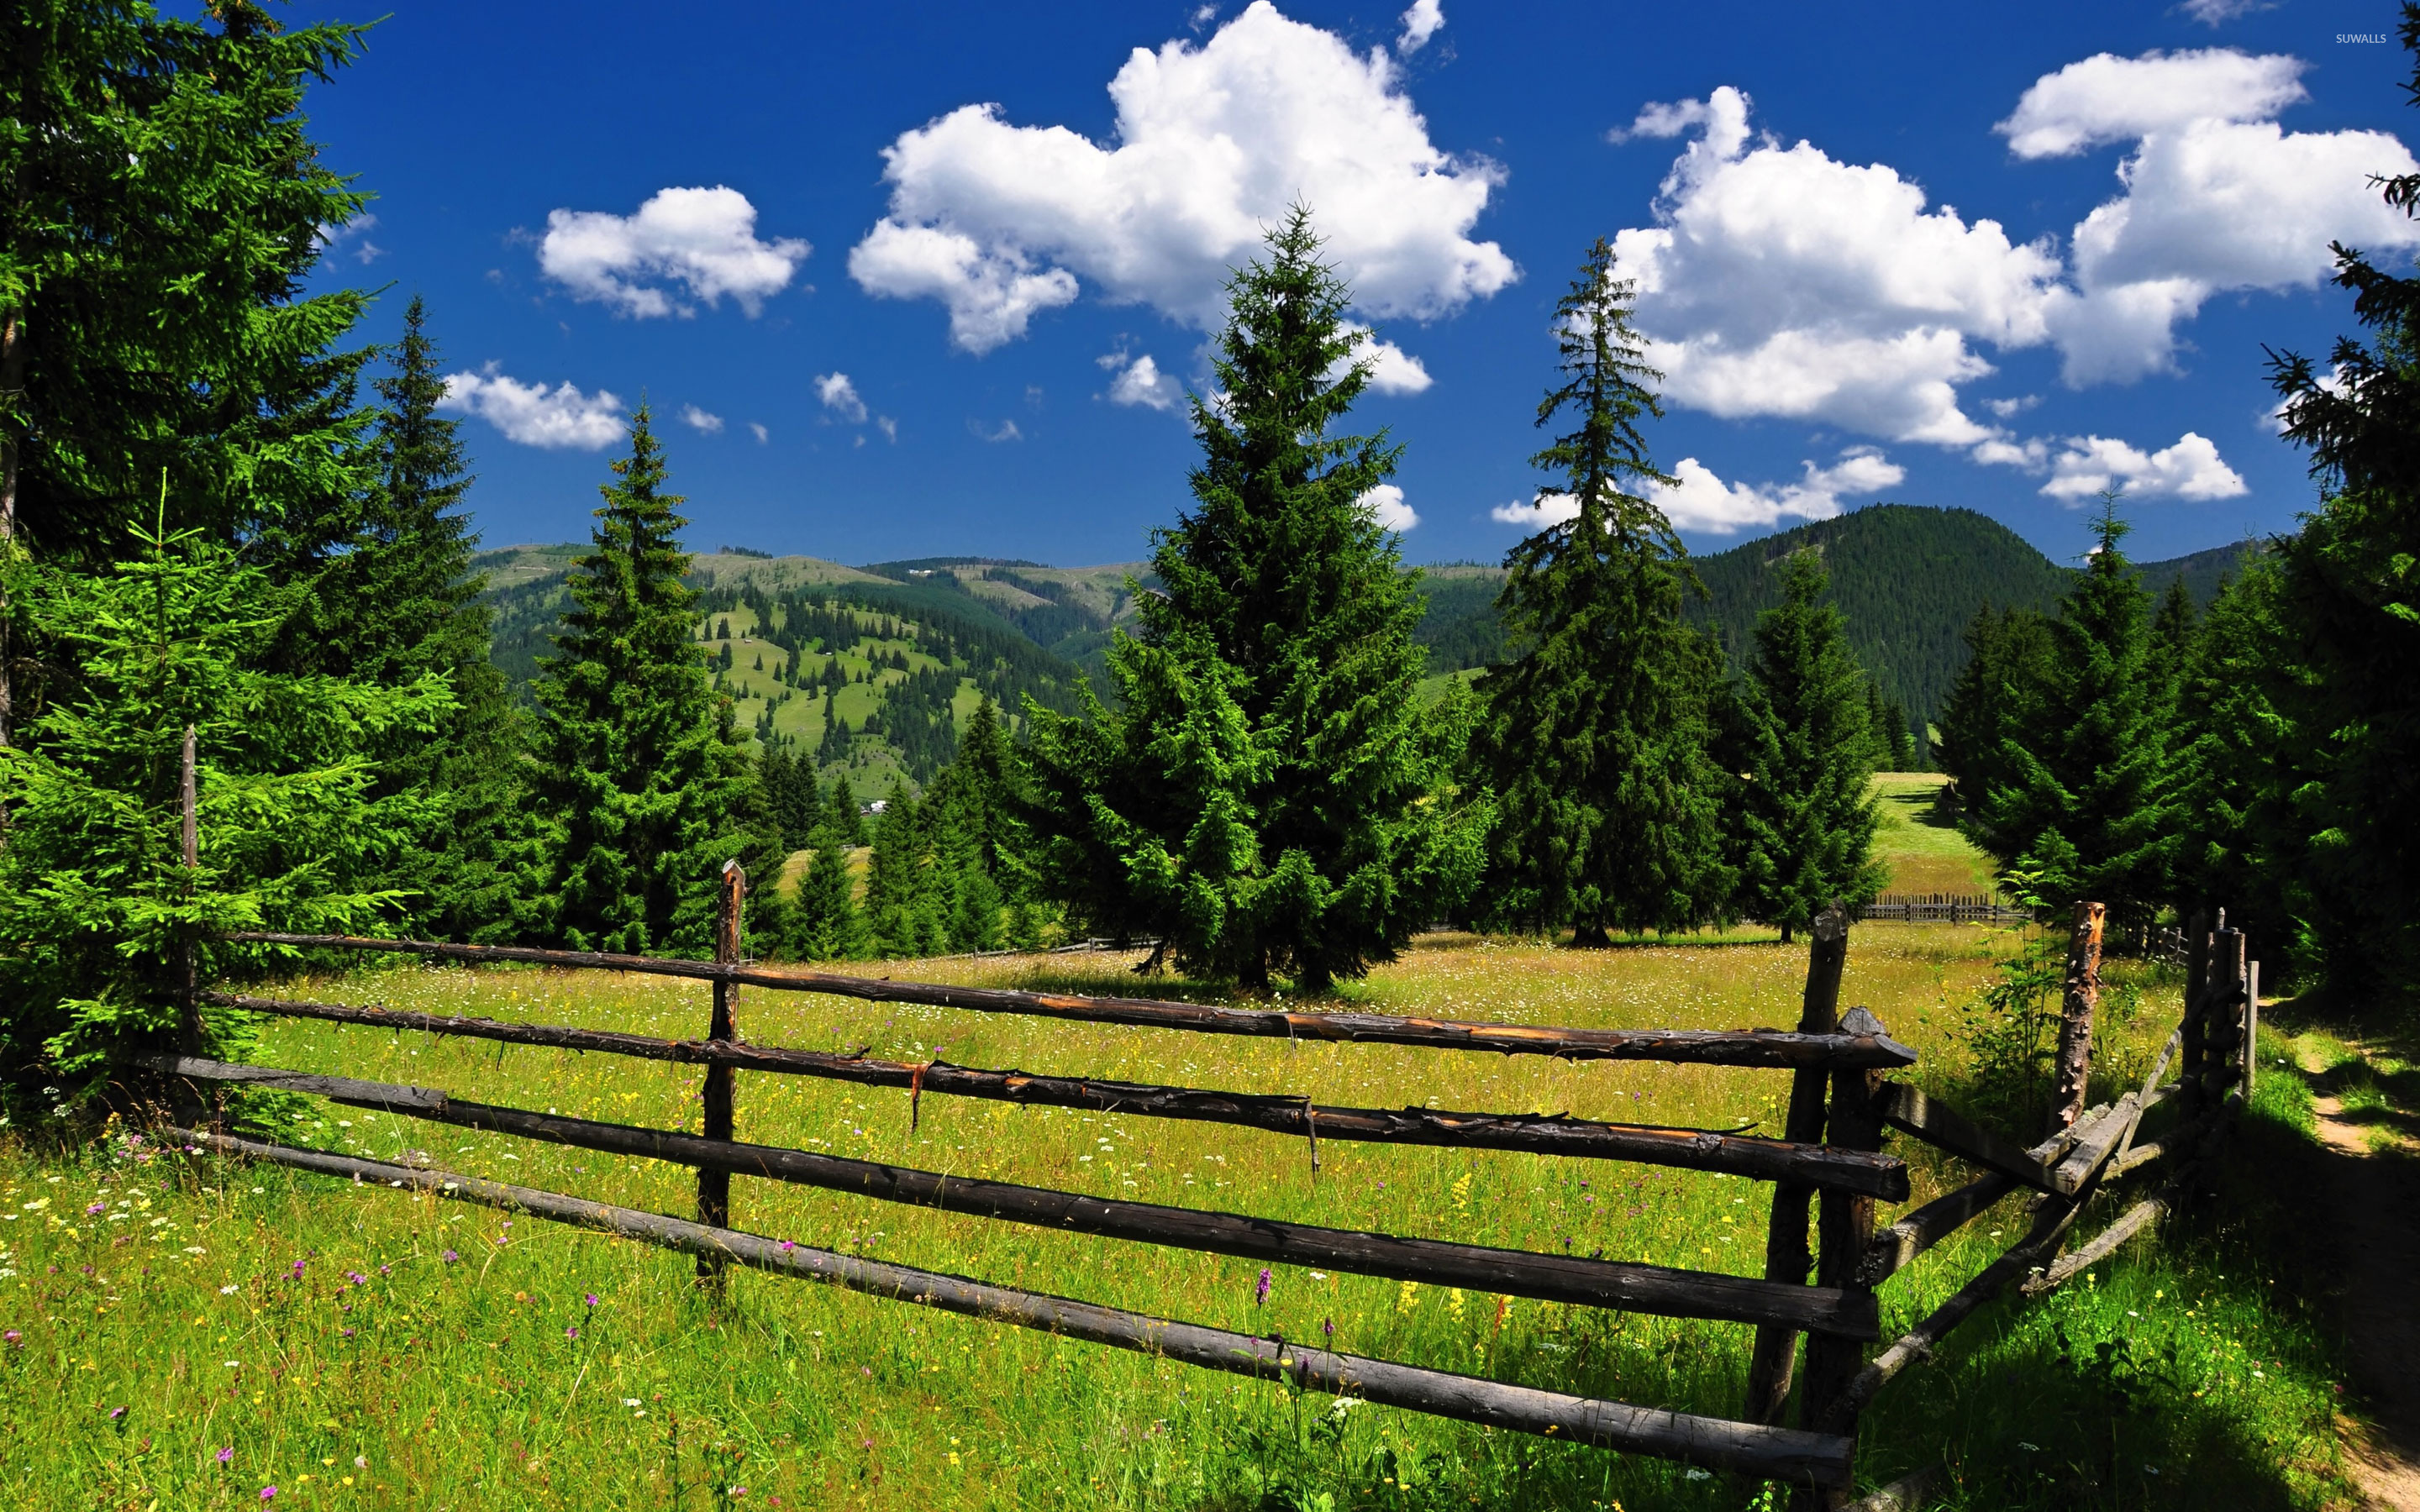 Pretty Fall Wallpapers Fence In The Mountains Wallpaper Nature Wallpapers 18527